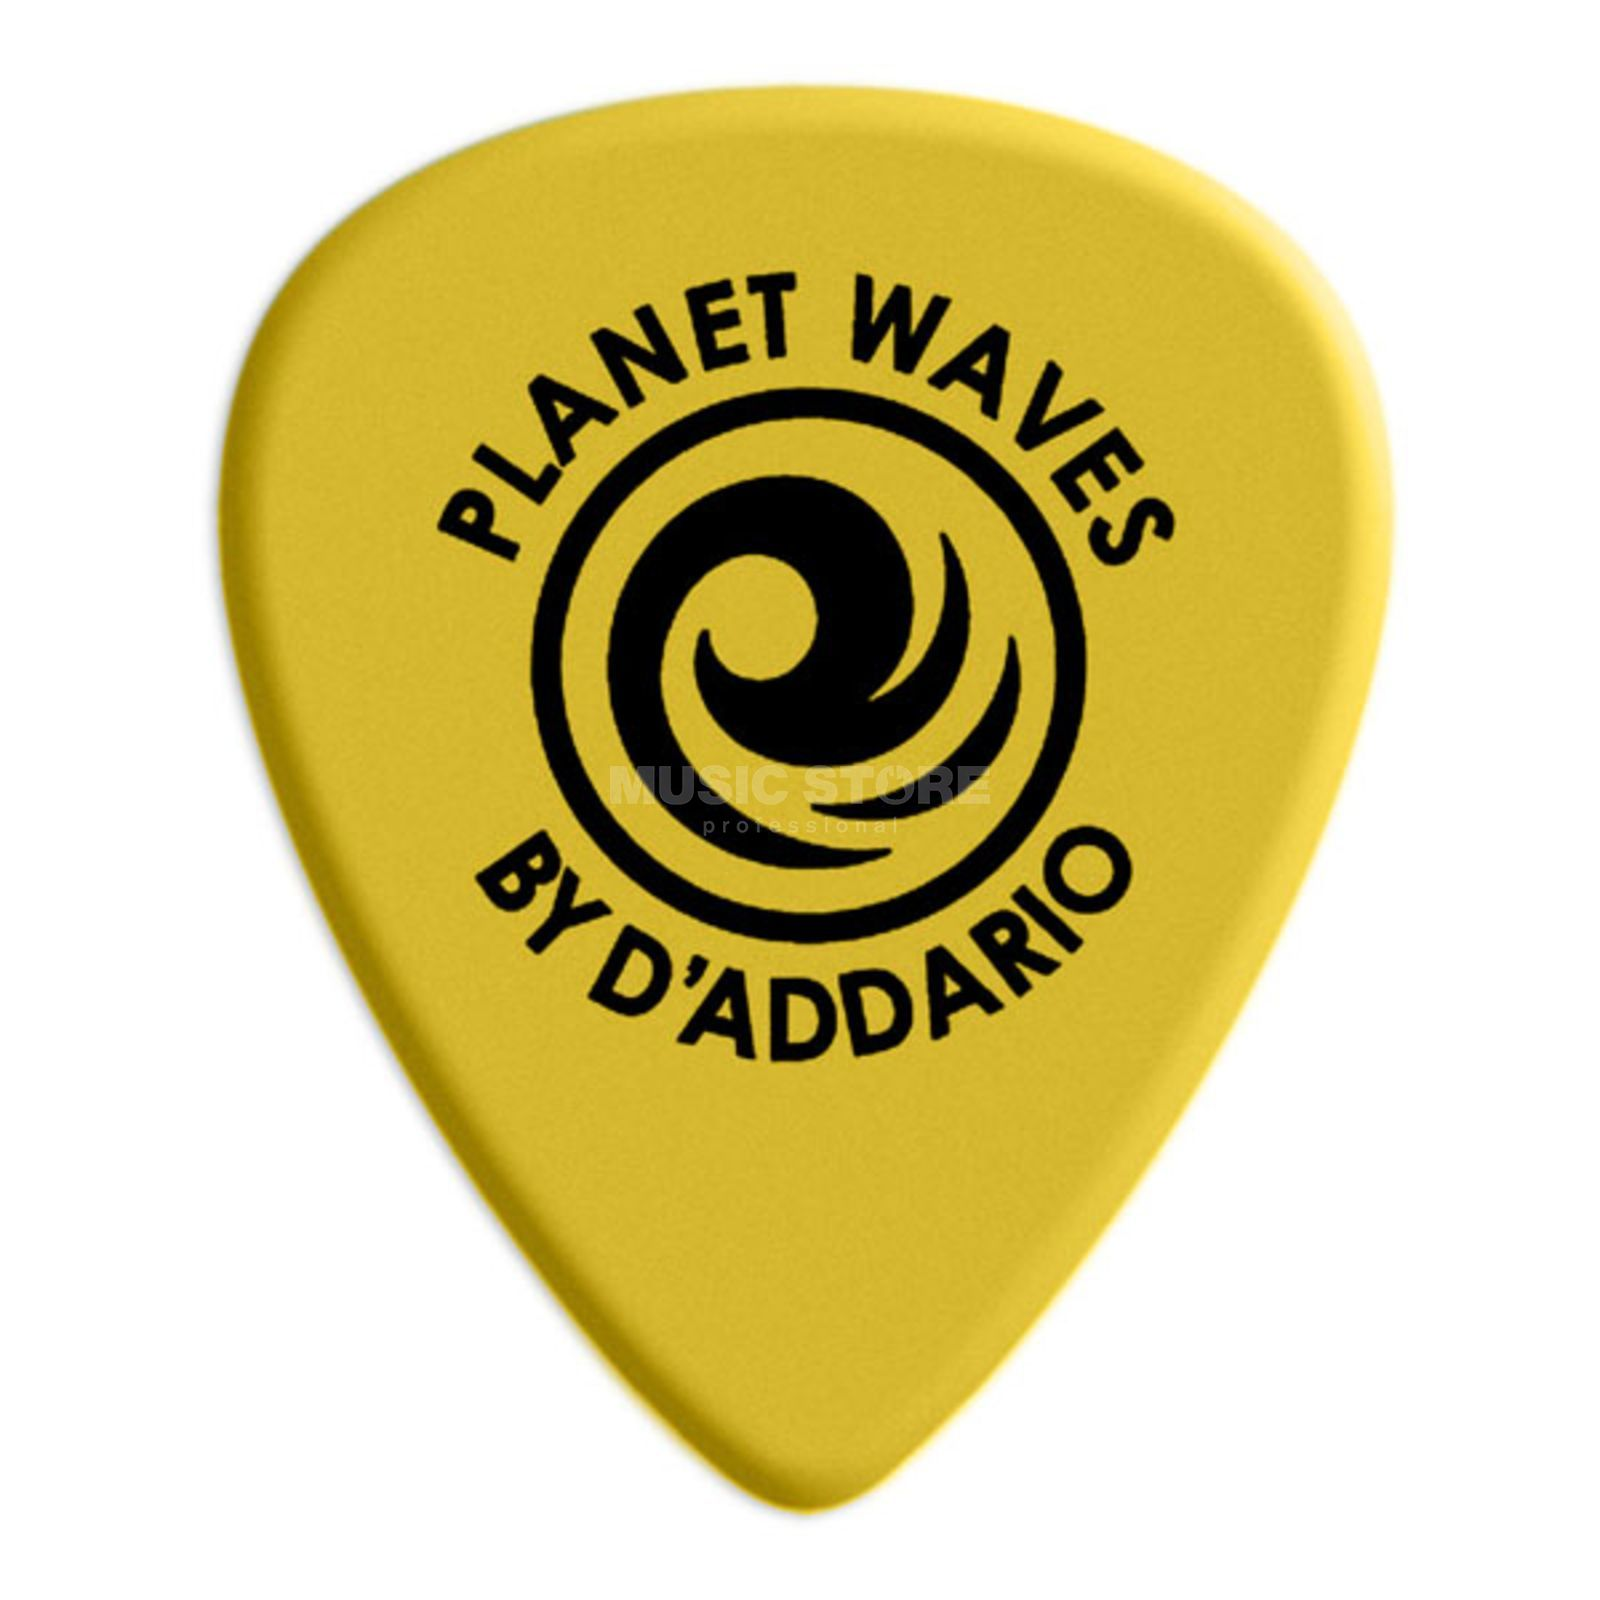 D'Addario Planet Waves Cortex Picks 1,25mm 10-Pack, 1UCT7-10 Produktbild